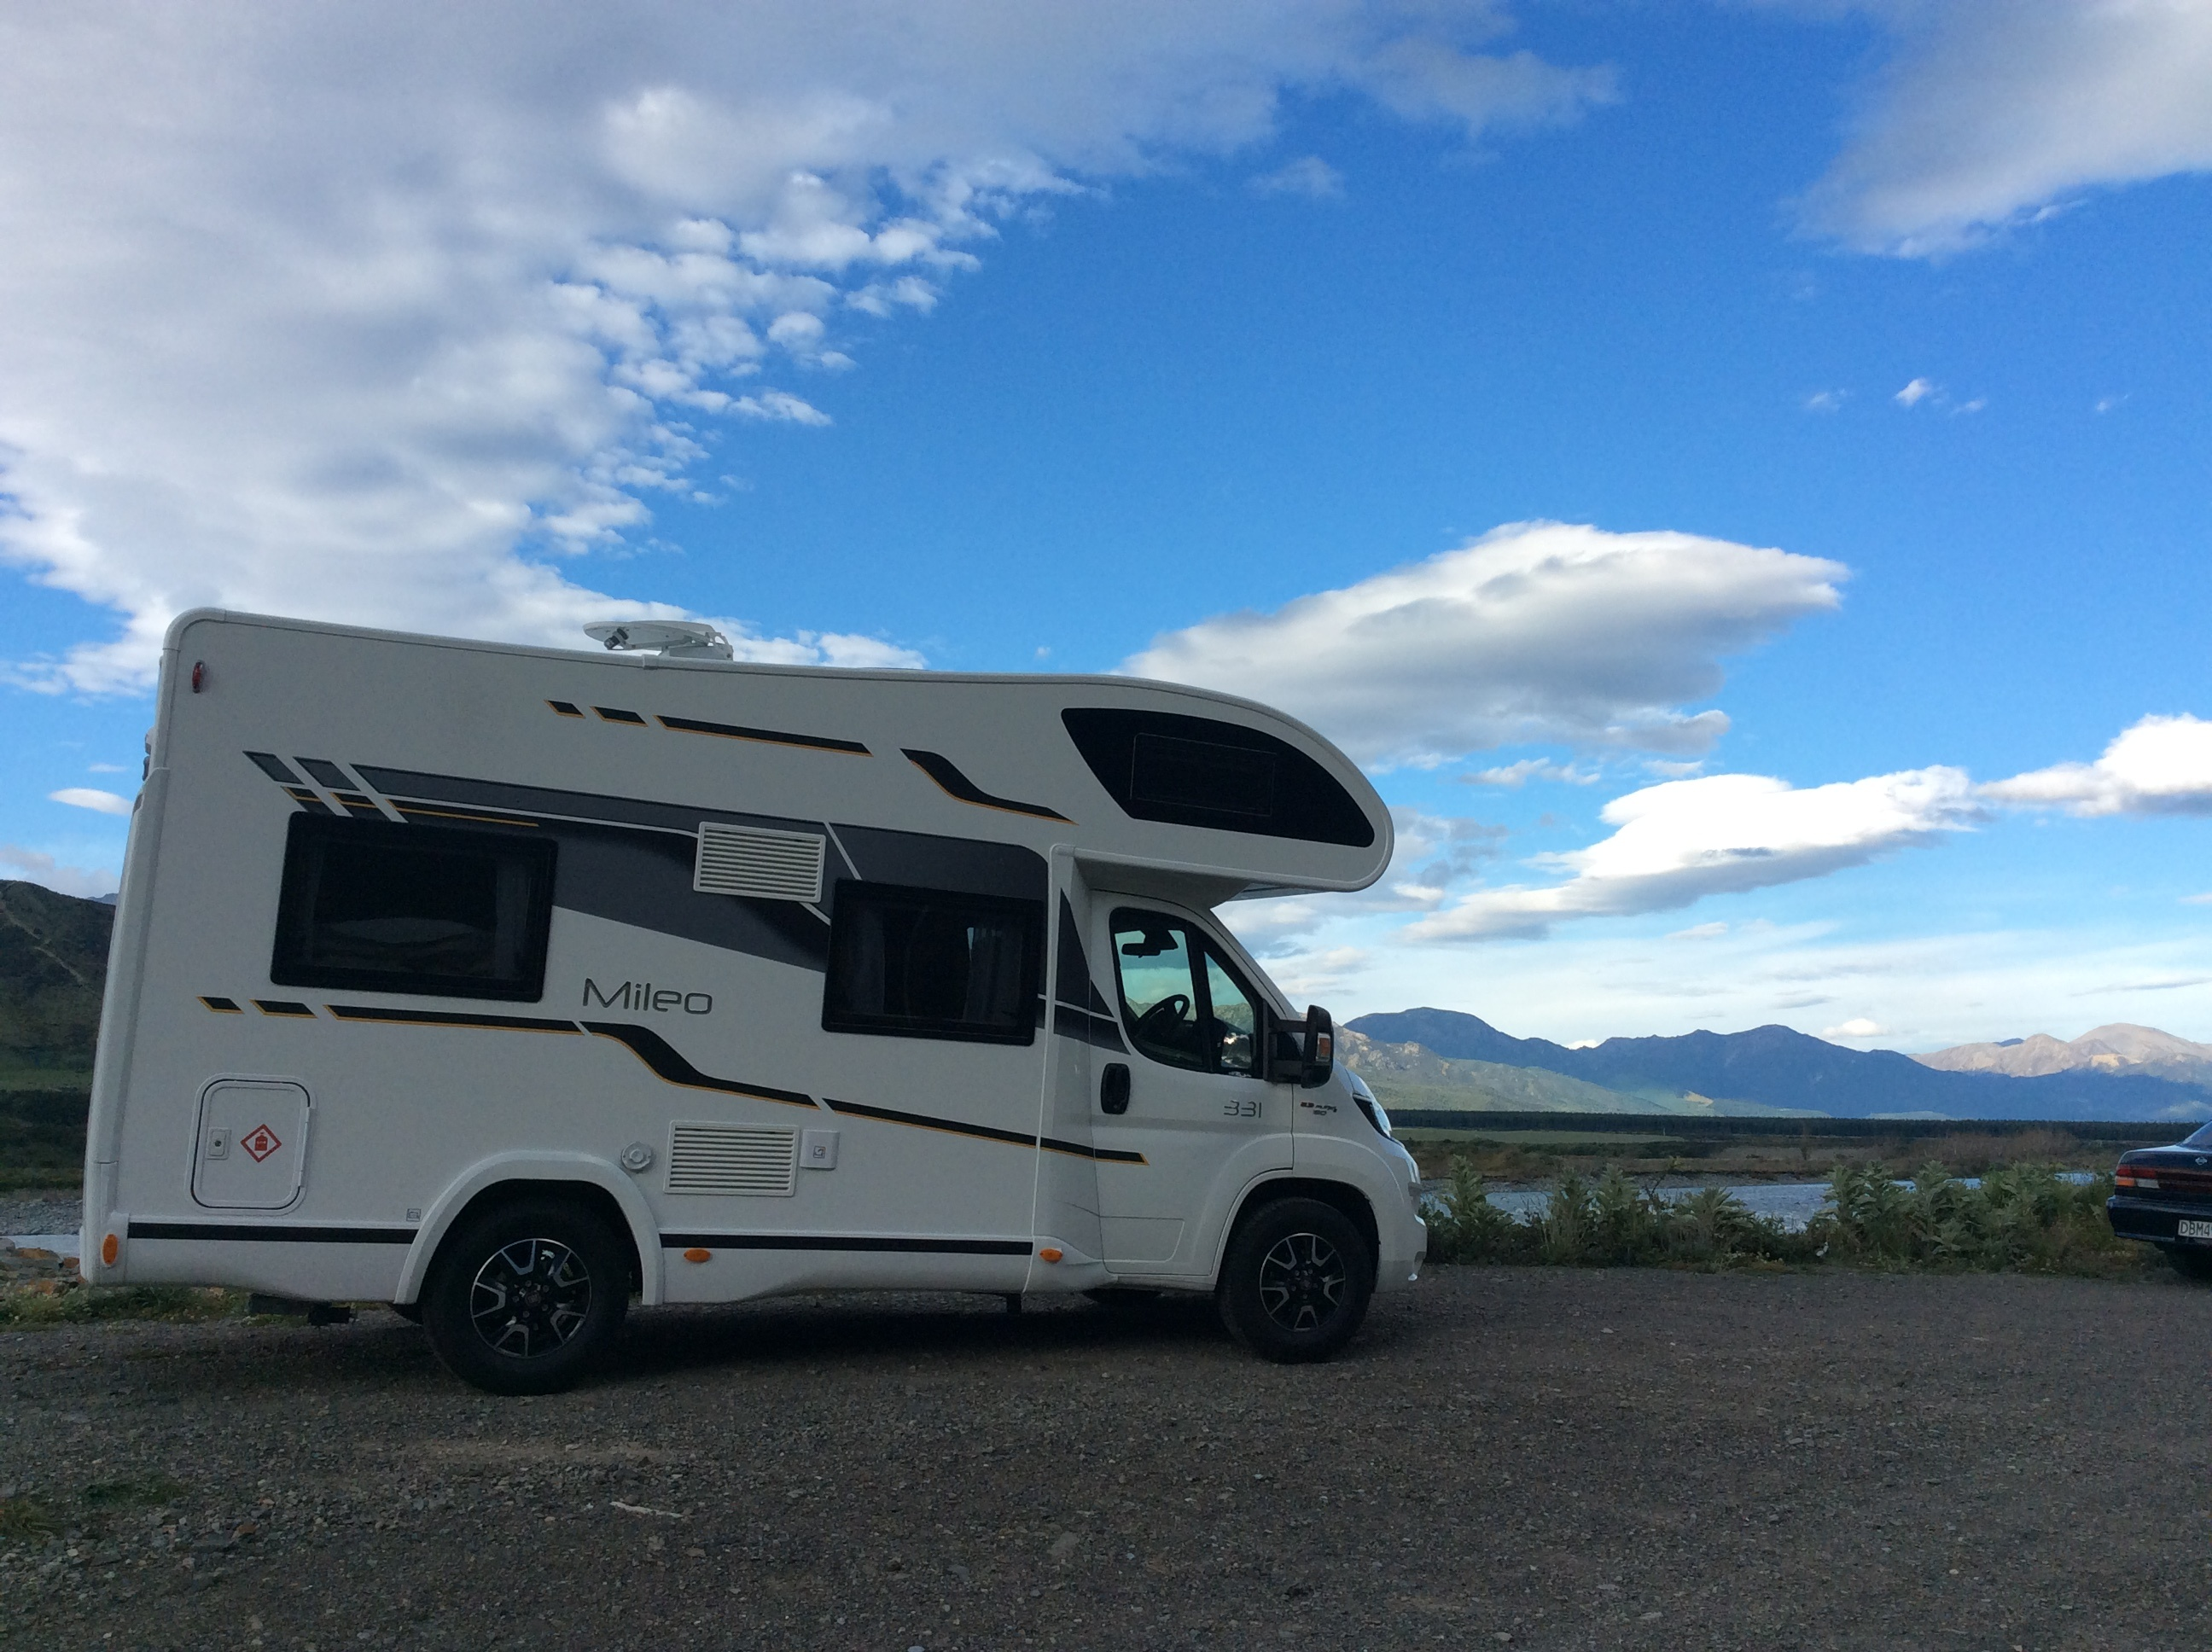 RV vs campervan vs motorhome